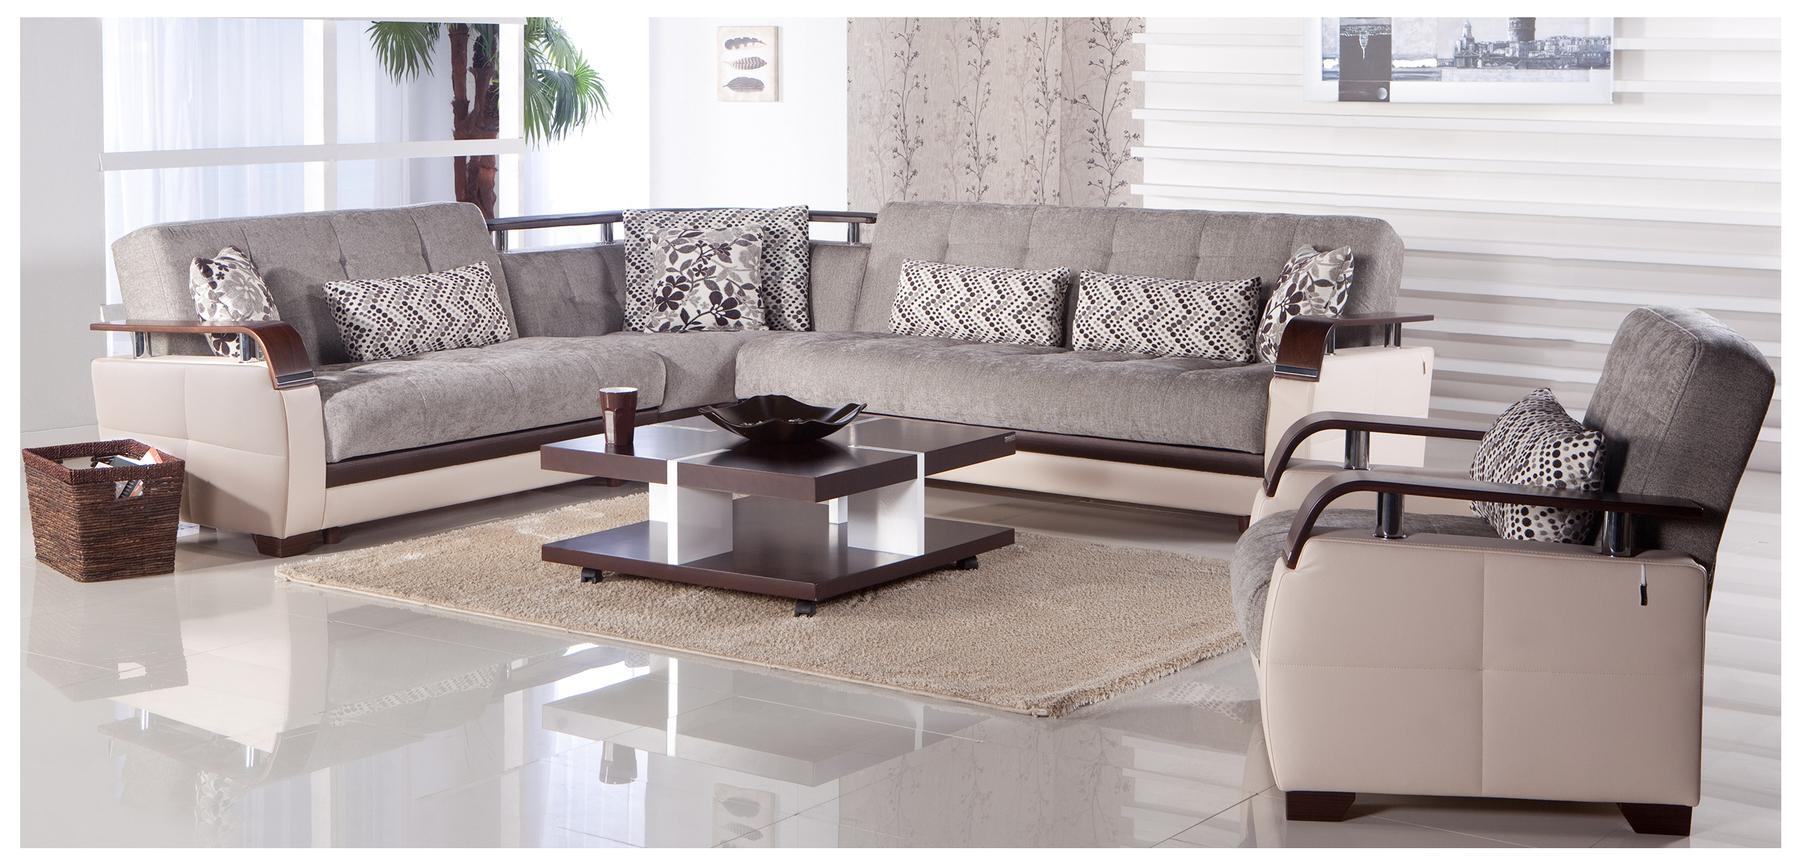 Featured Image of Houston Sectional Sofa